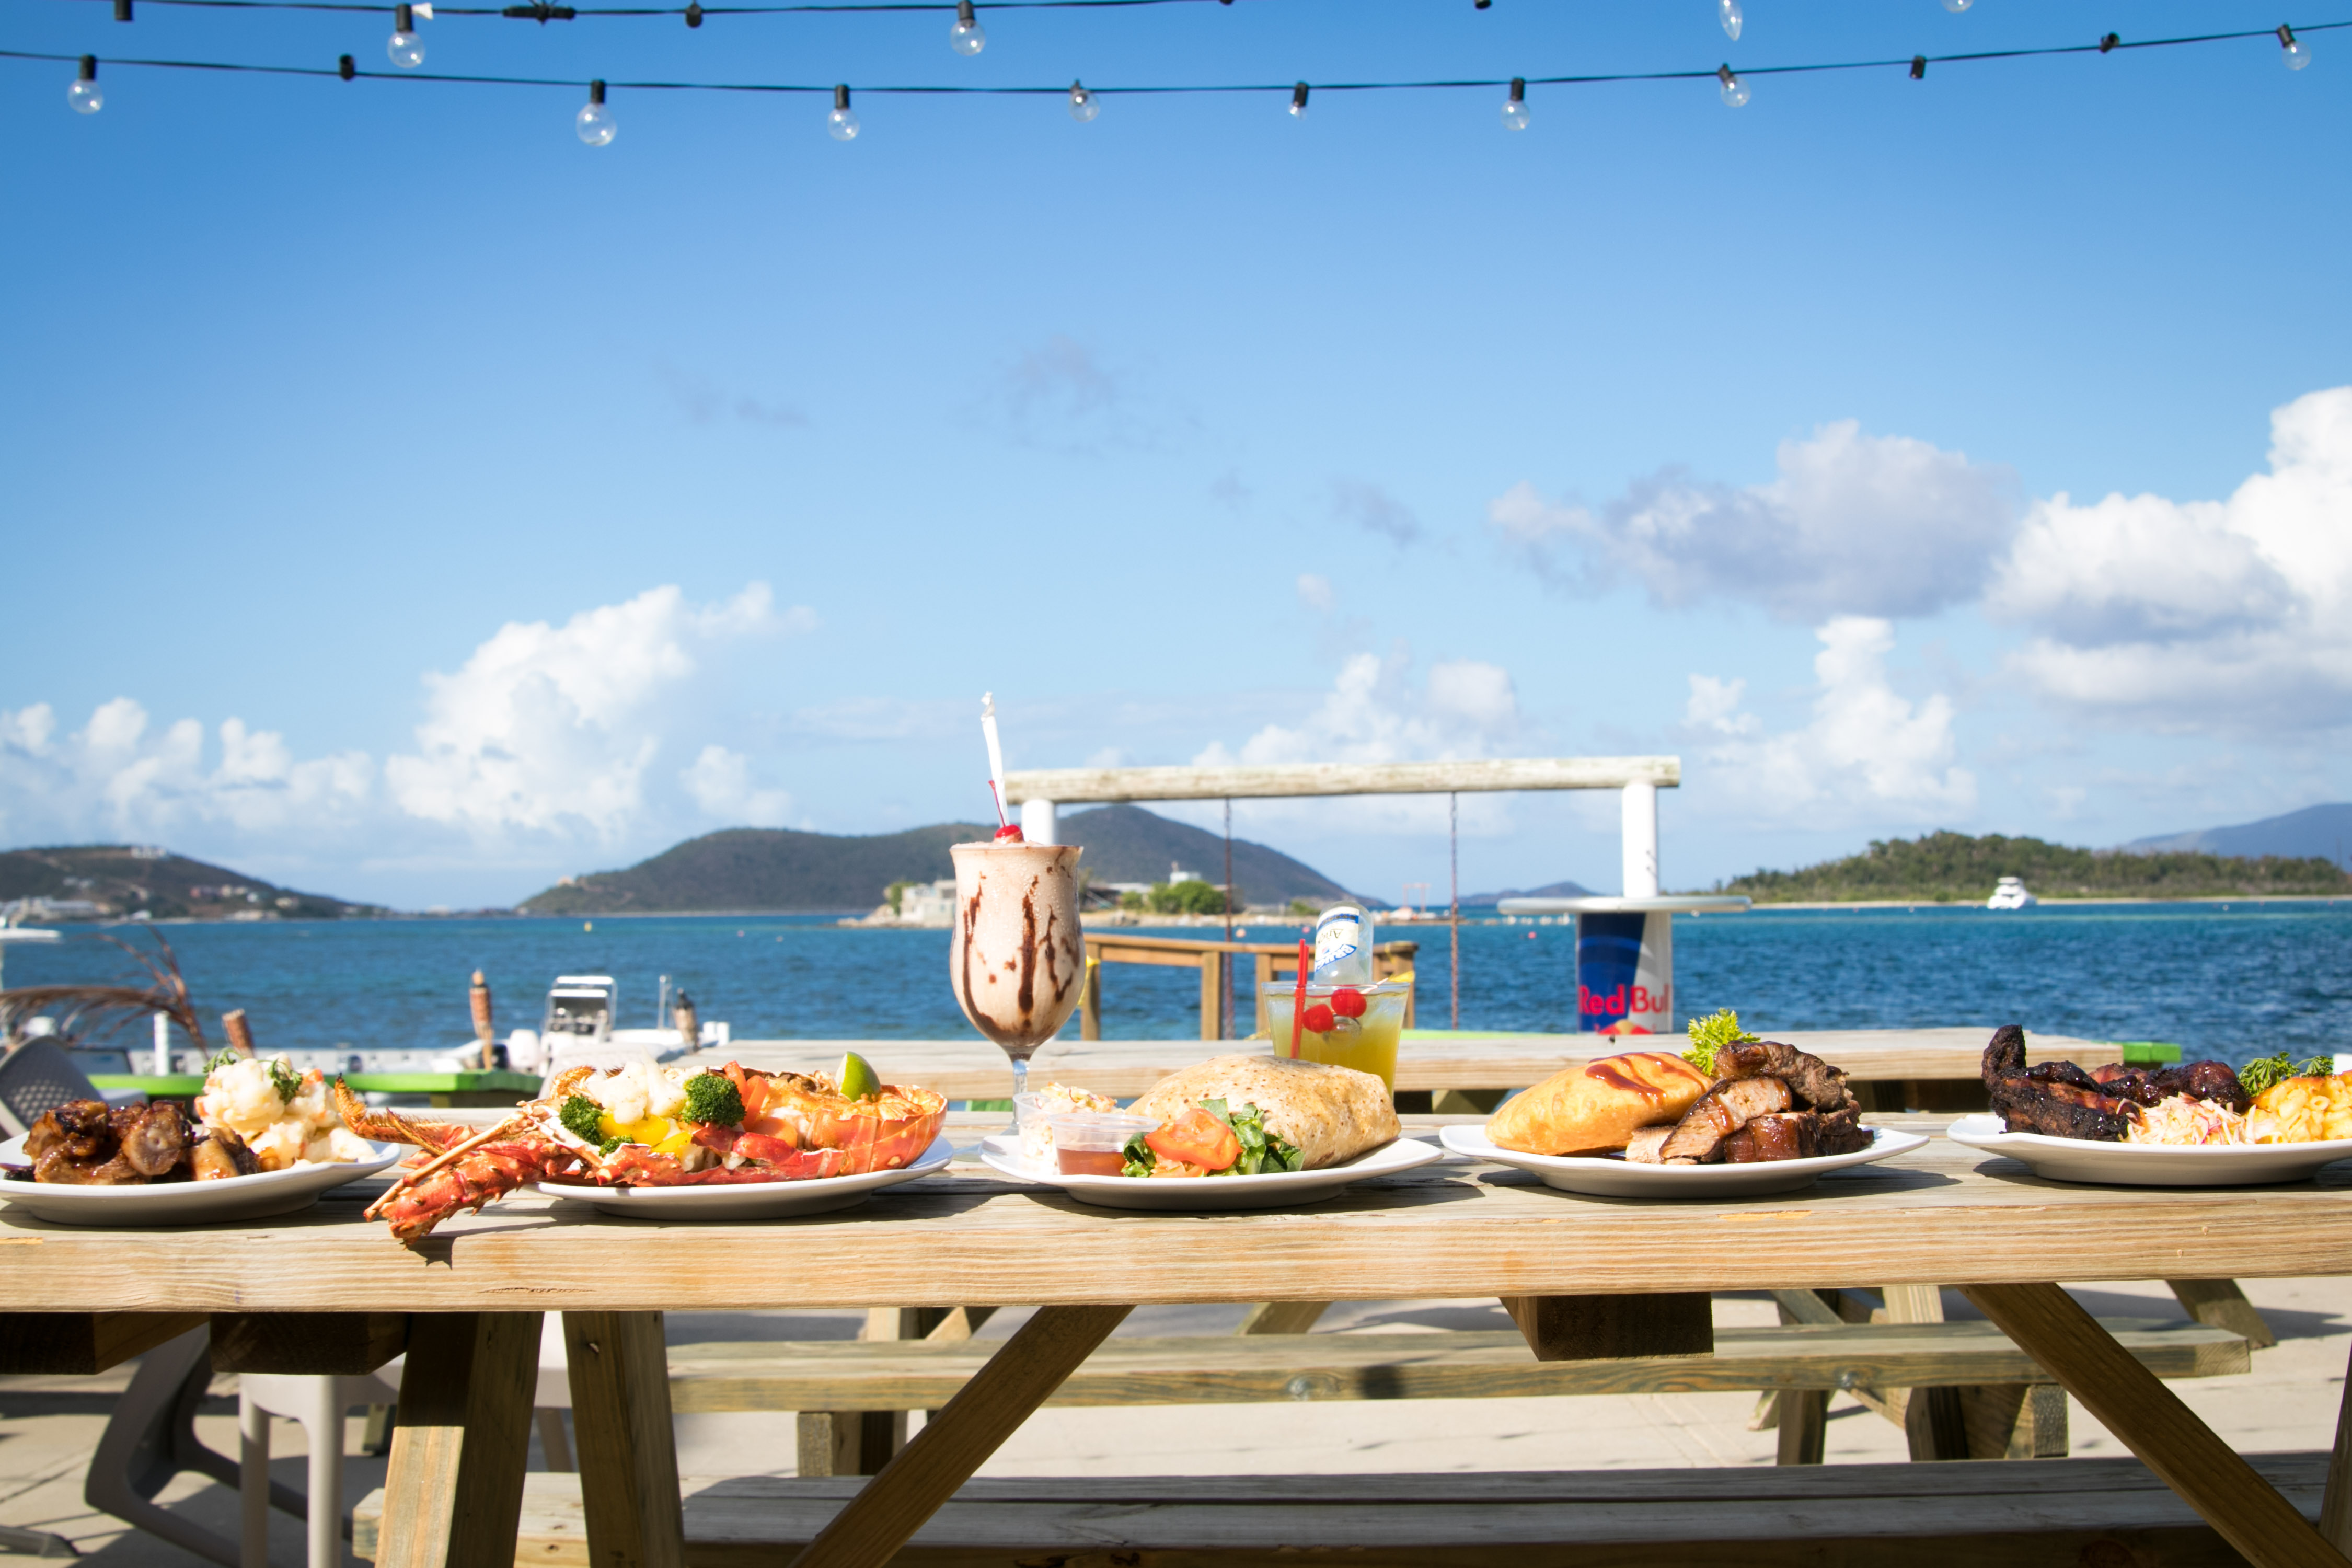 food selection at trellis bay market bar &